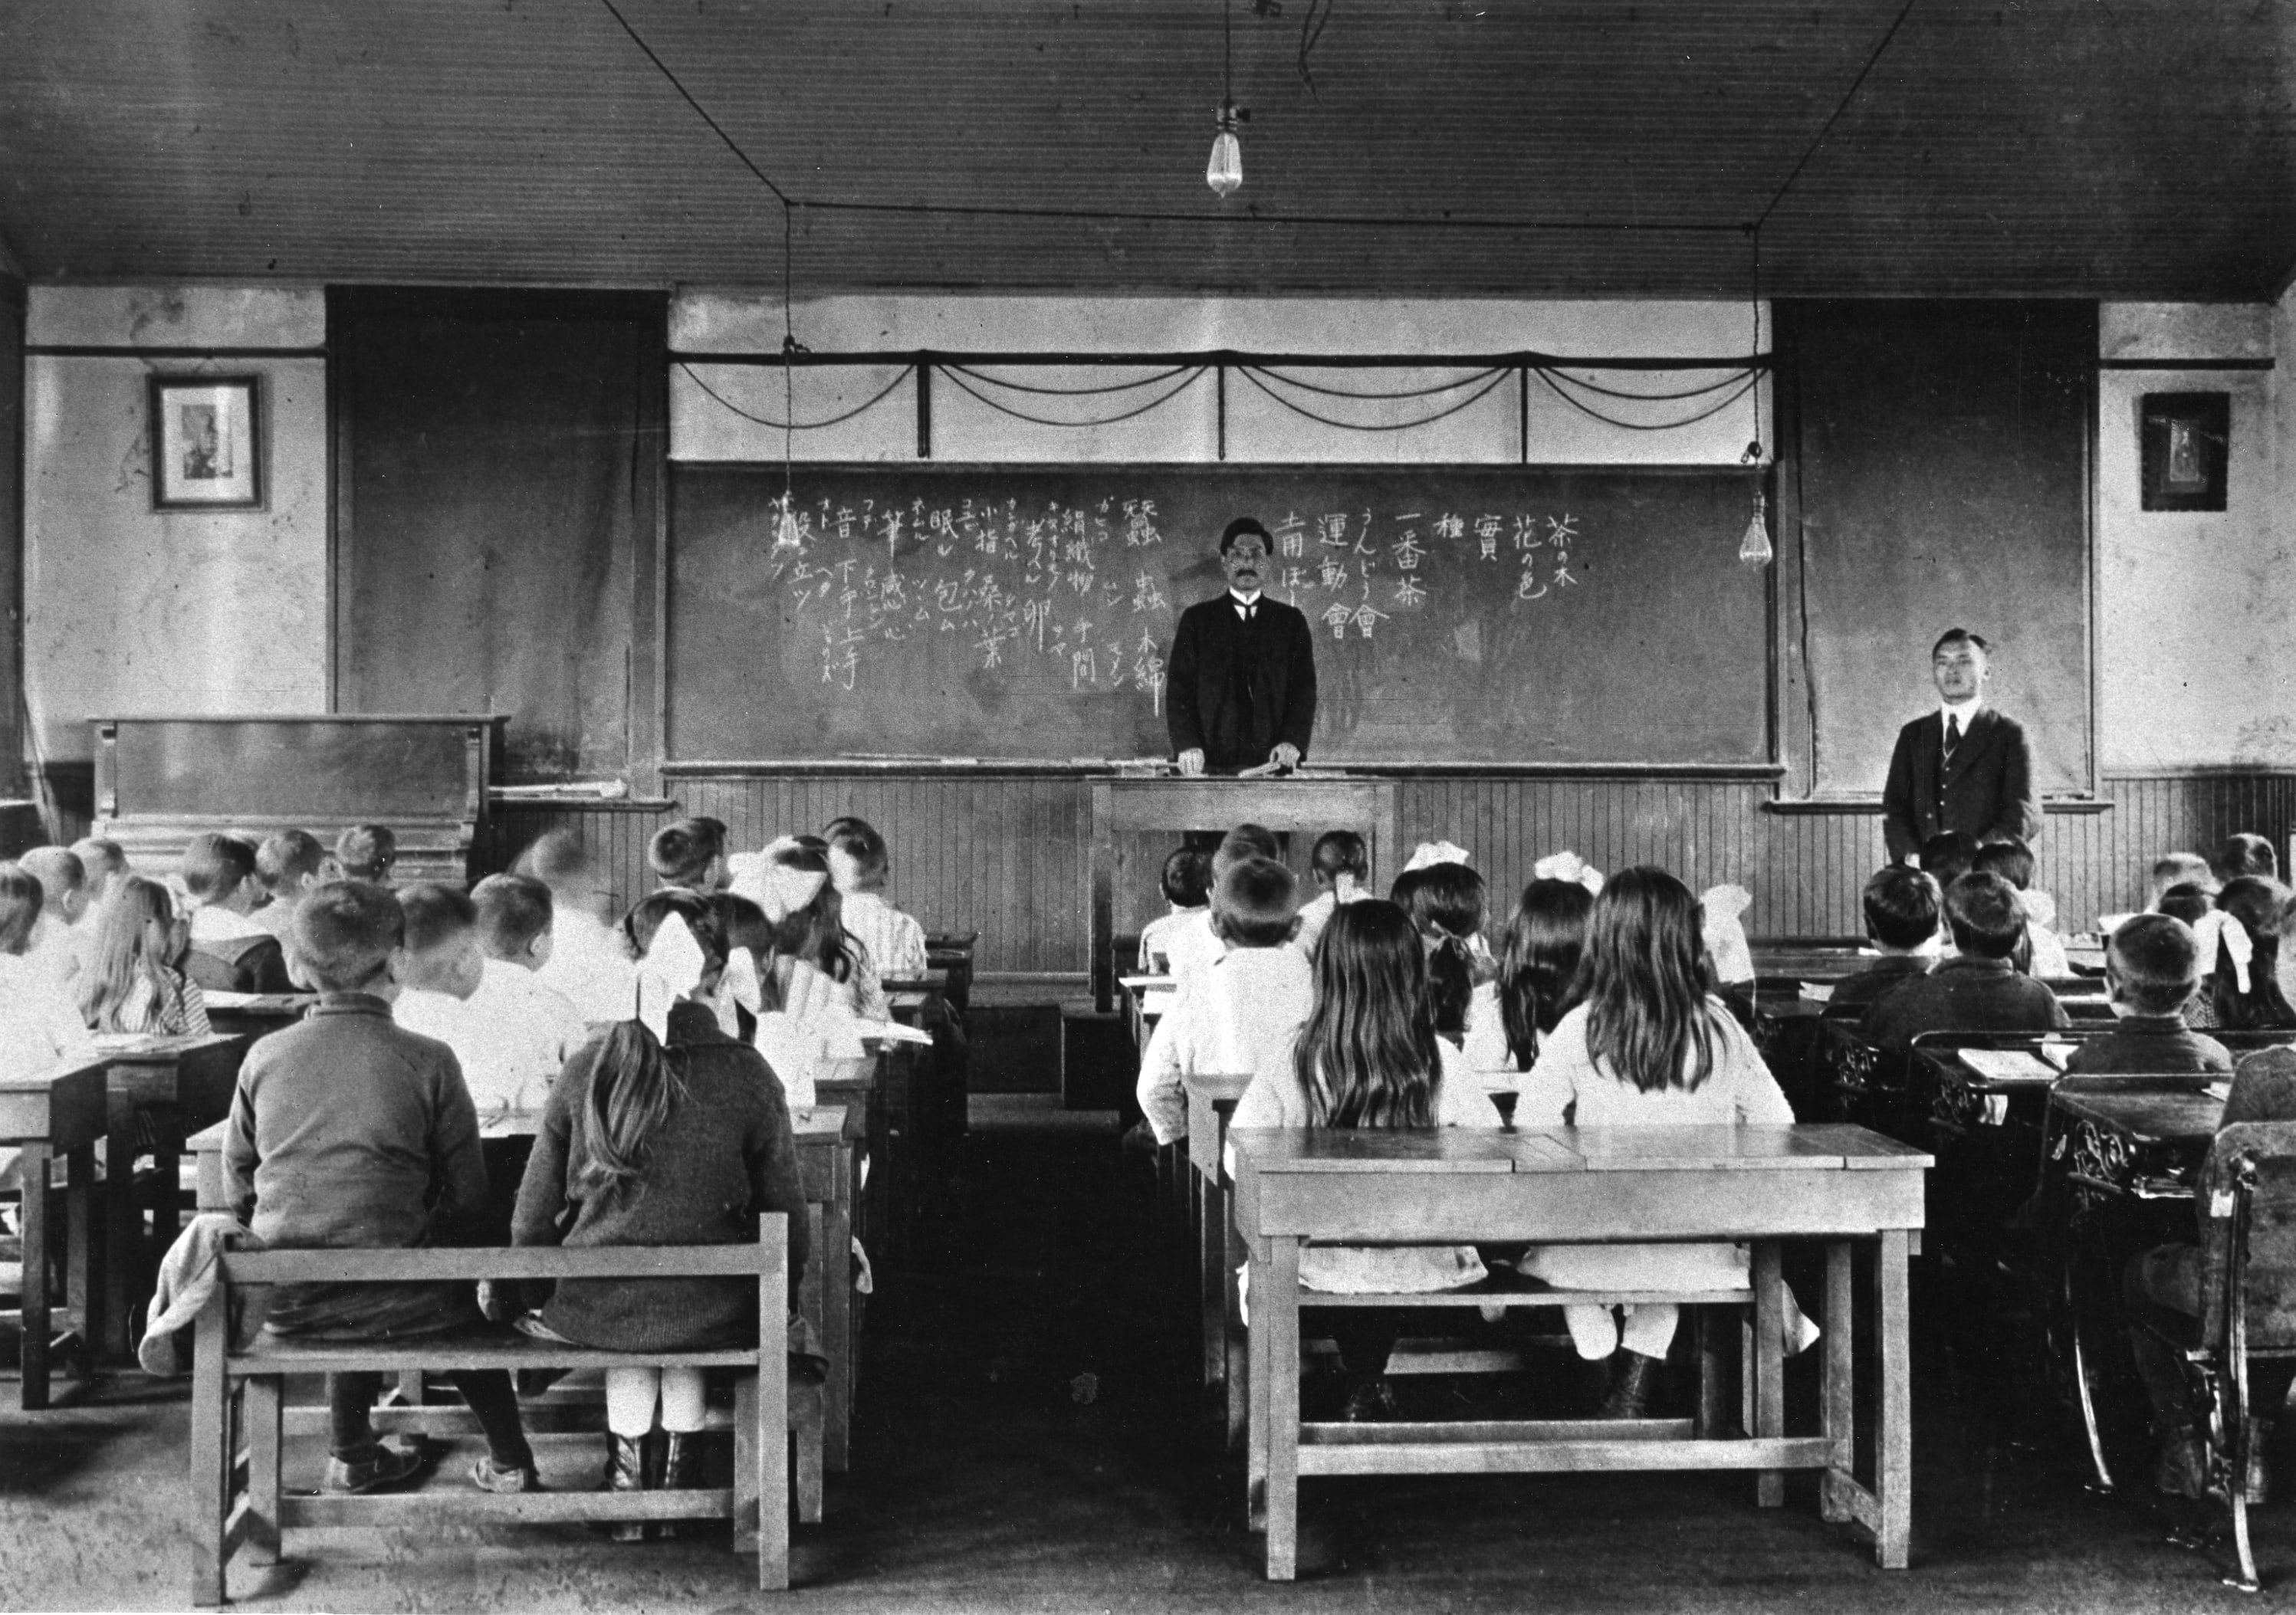 This archival photo shows a Japanese language school classroom in the 1920s. The photo is taken from the back of the class. The pupils have their backs to the camera as they face the teacher standing in front of the class.